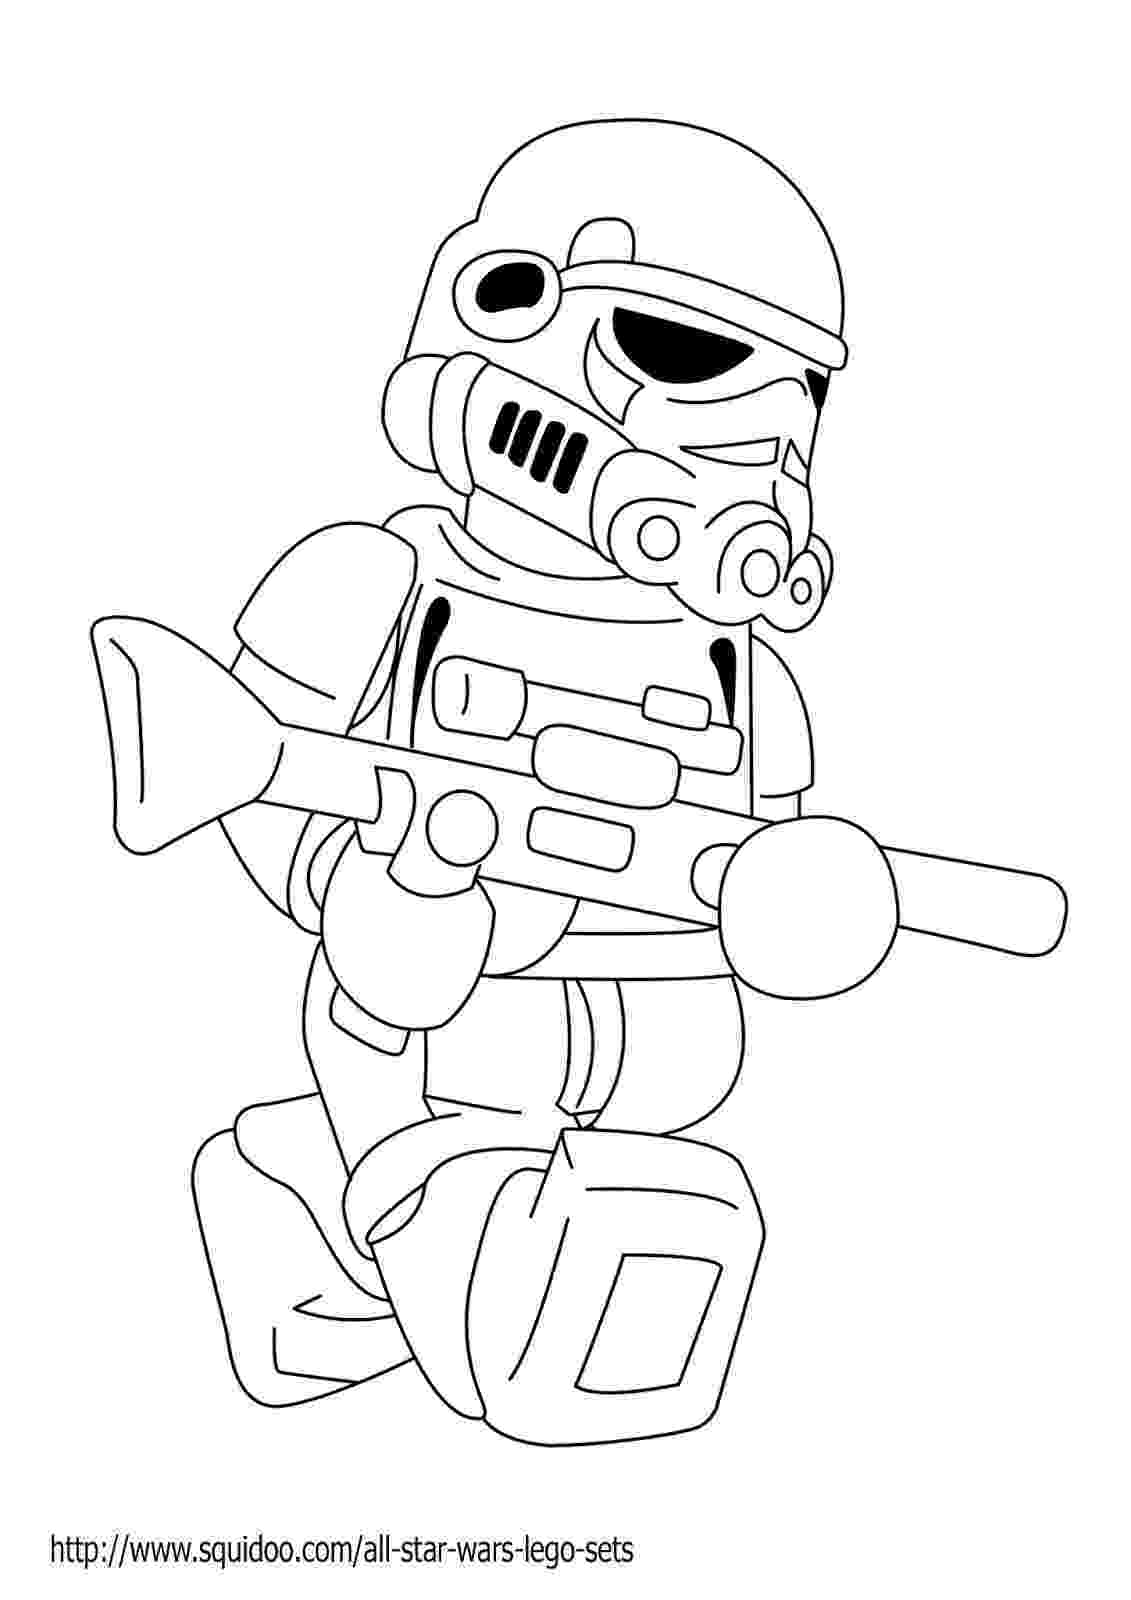 coloriage lego star wars coloriage lego star wars 78 dessin lego wars star coloriage